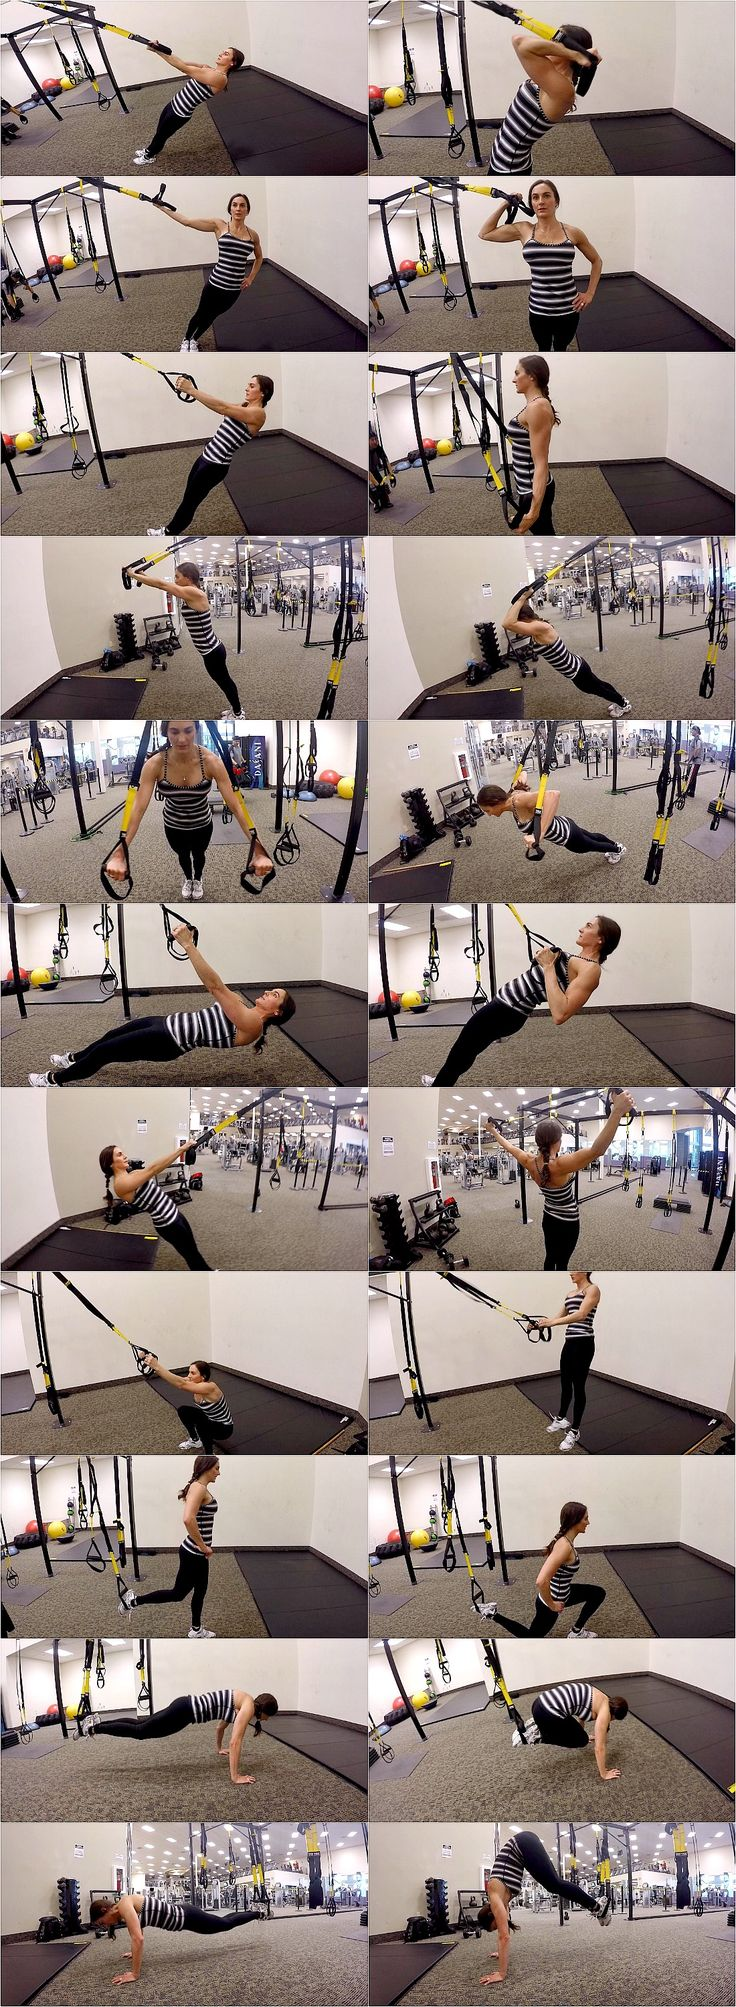 10 Weeks to Fitness-Day 47: TRX